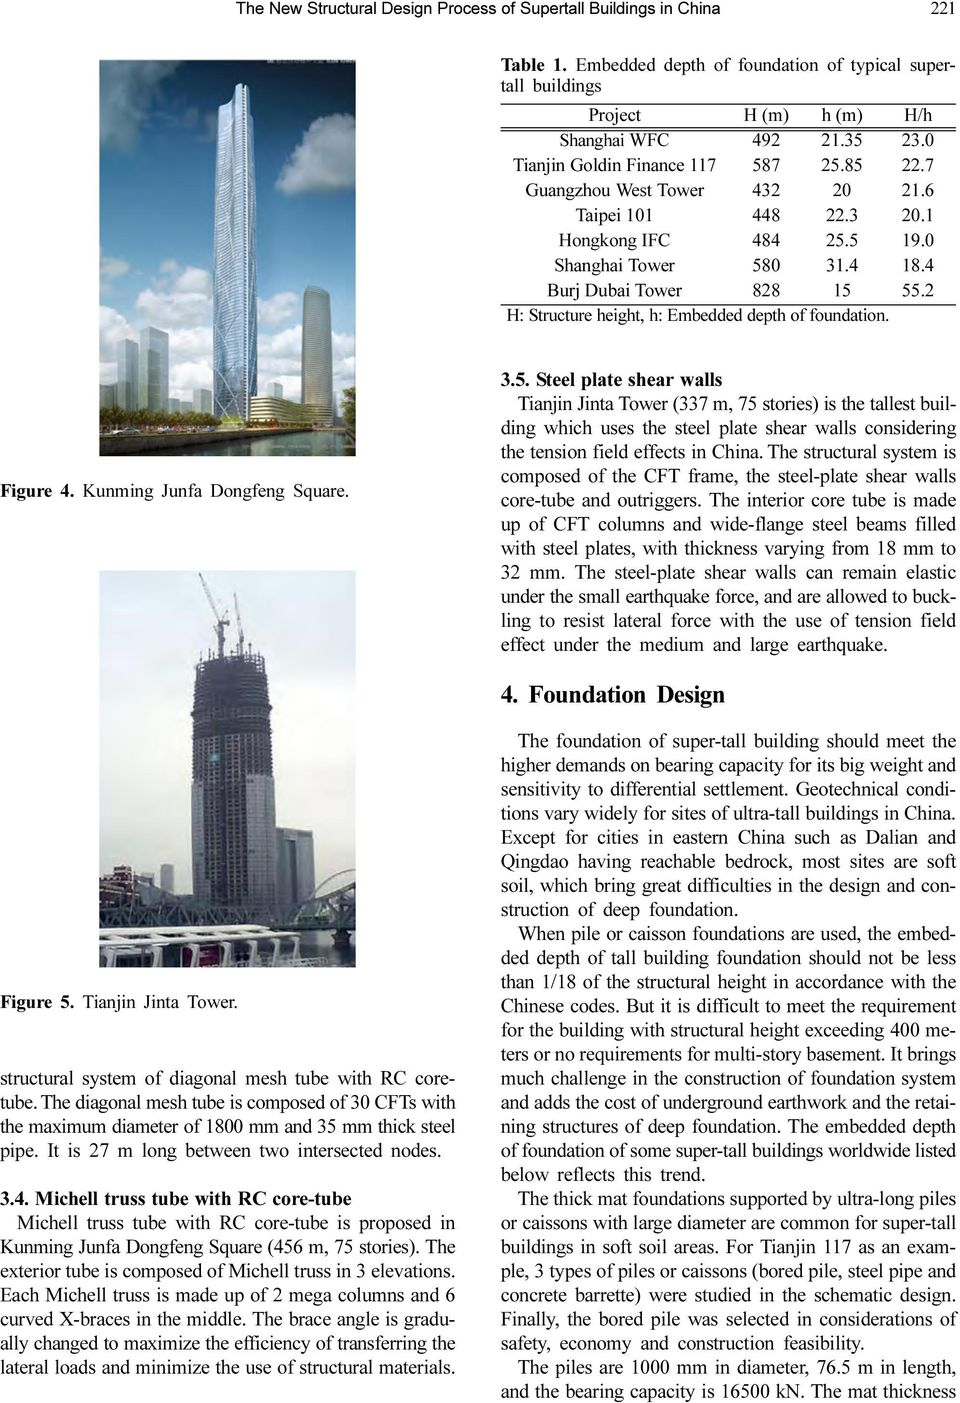 The New Structural Design Process of Supertall Buildings in China - PDF